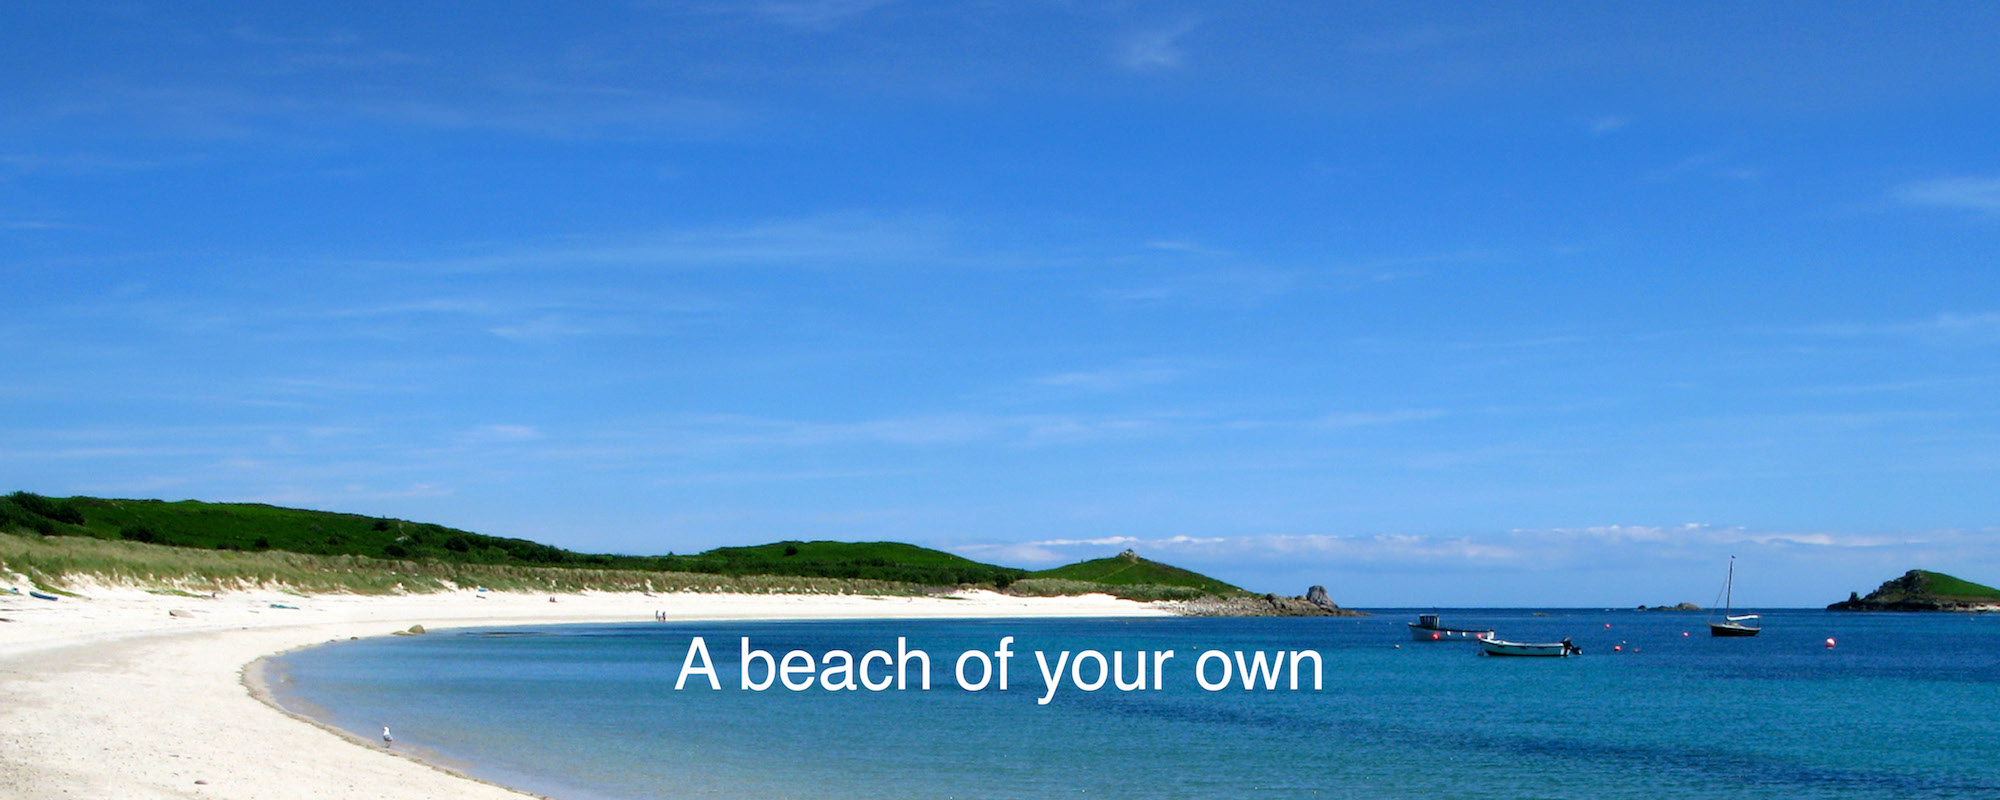 A beach of your own